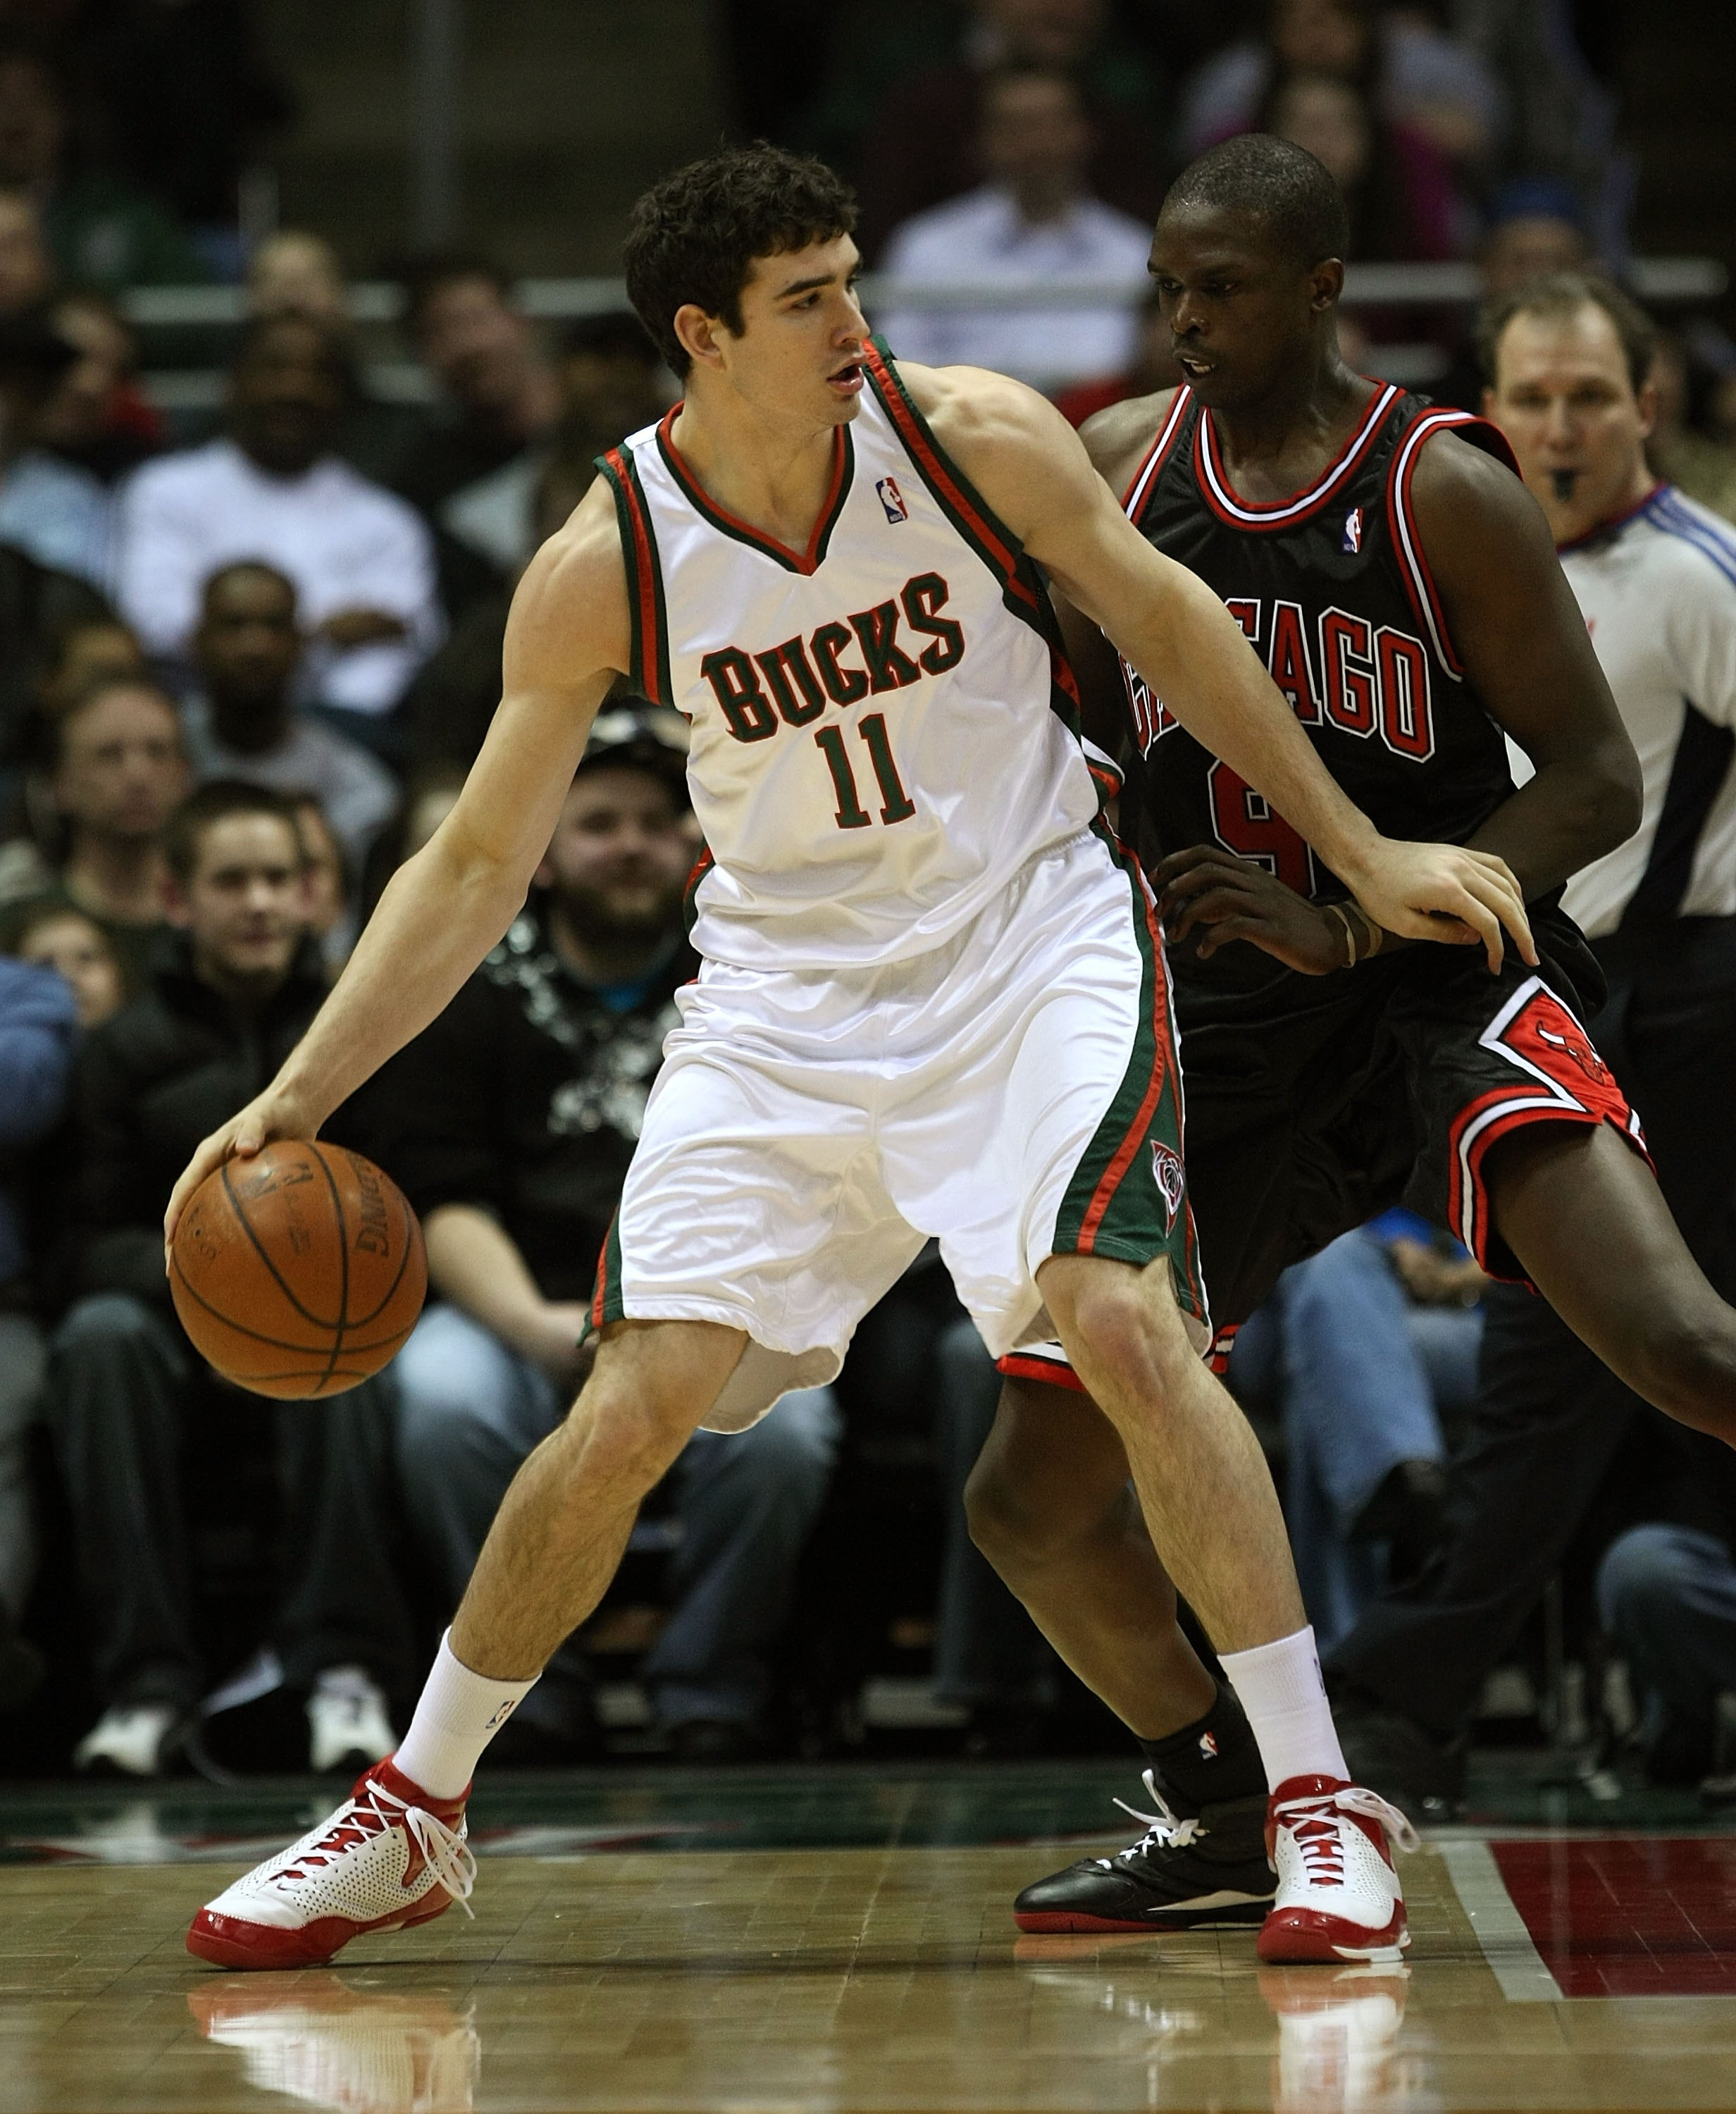 MILWAUKEE - FEBRUARY 18: Joe Alexander #11 of the Milwaukee Bucks moves against Loul Deng #9 of the Chicago Bulls on February 18, 2009 at the Bradley Center in Milwaukee, Wisconsin. The Bulls defeated the Bucks 133-104. NOTE TO USER: User expressly acknow